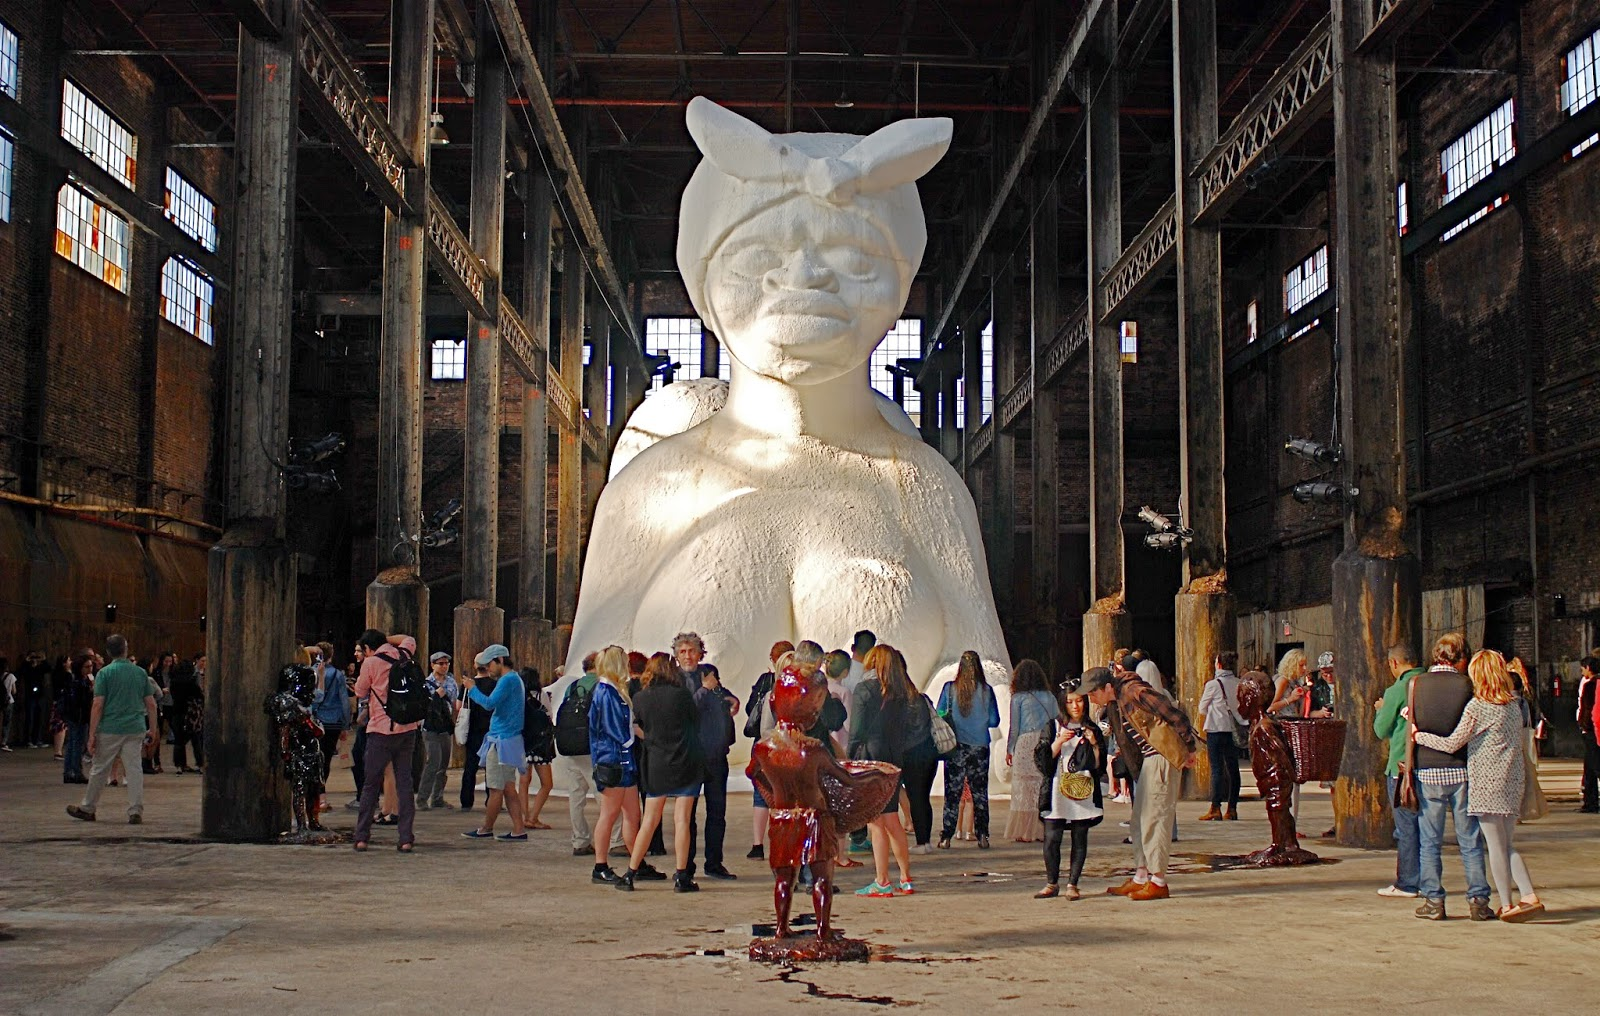 NYC NYC Kara Walkers Sugary Sculptures At The Defunct Domino - 17 creative sculptures around world